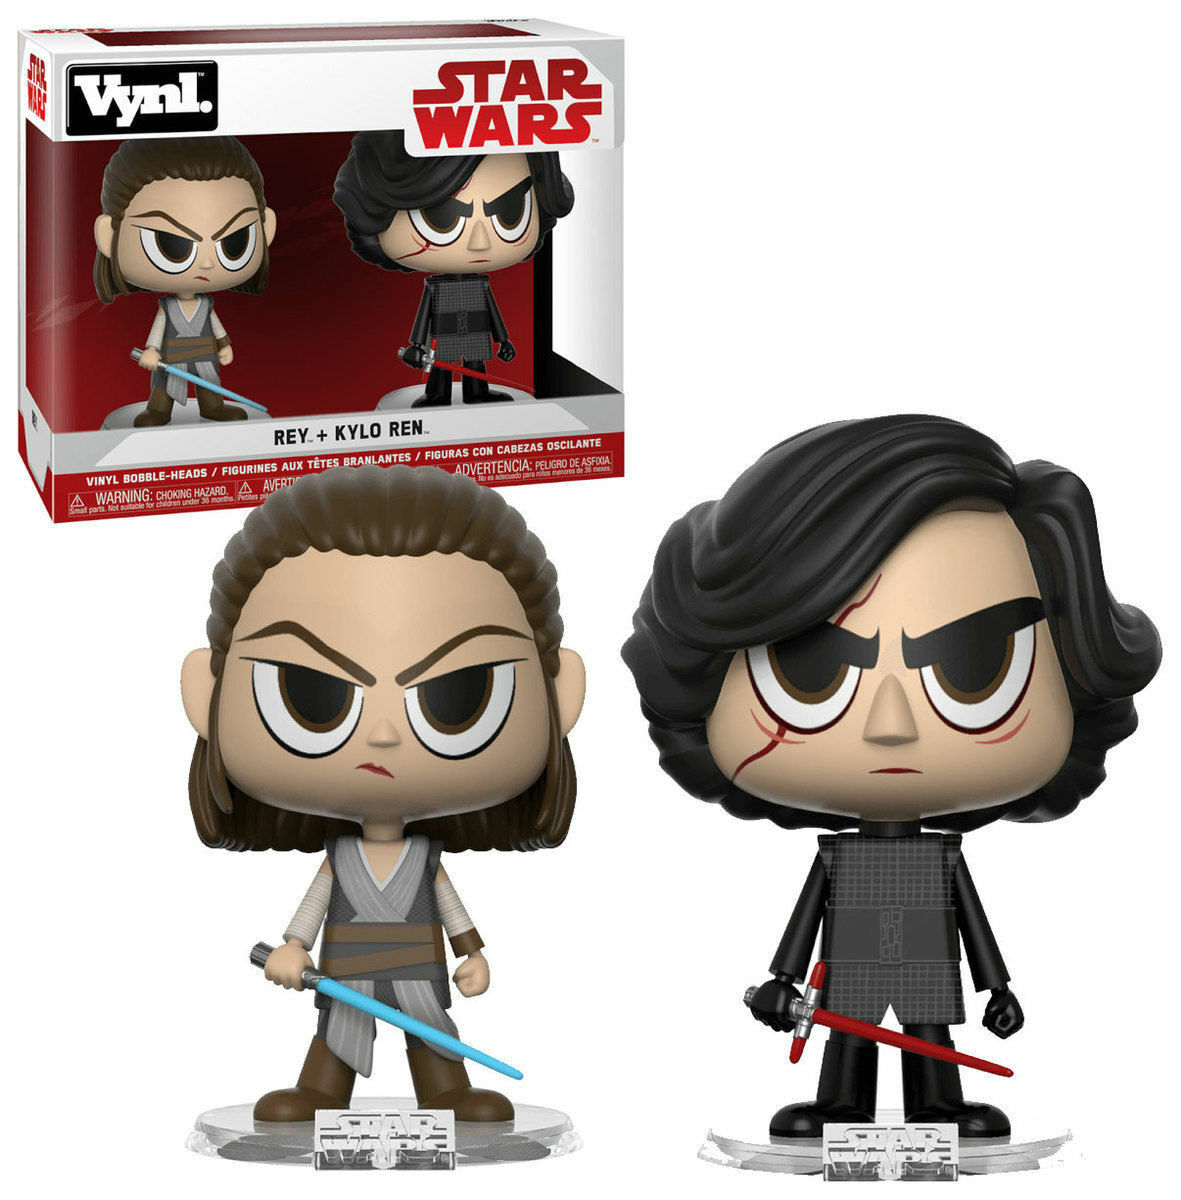 StarWars collection : Funko Vynl. Star Wars the Force Awakening REY + KYLO REN Le Réveil de la Force